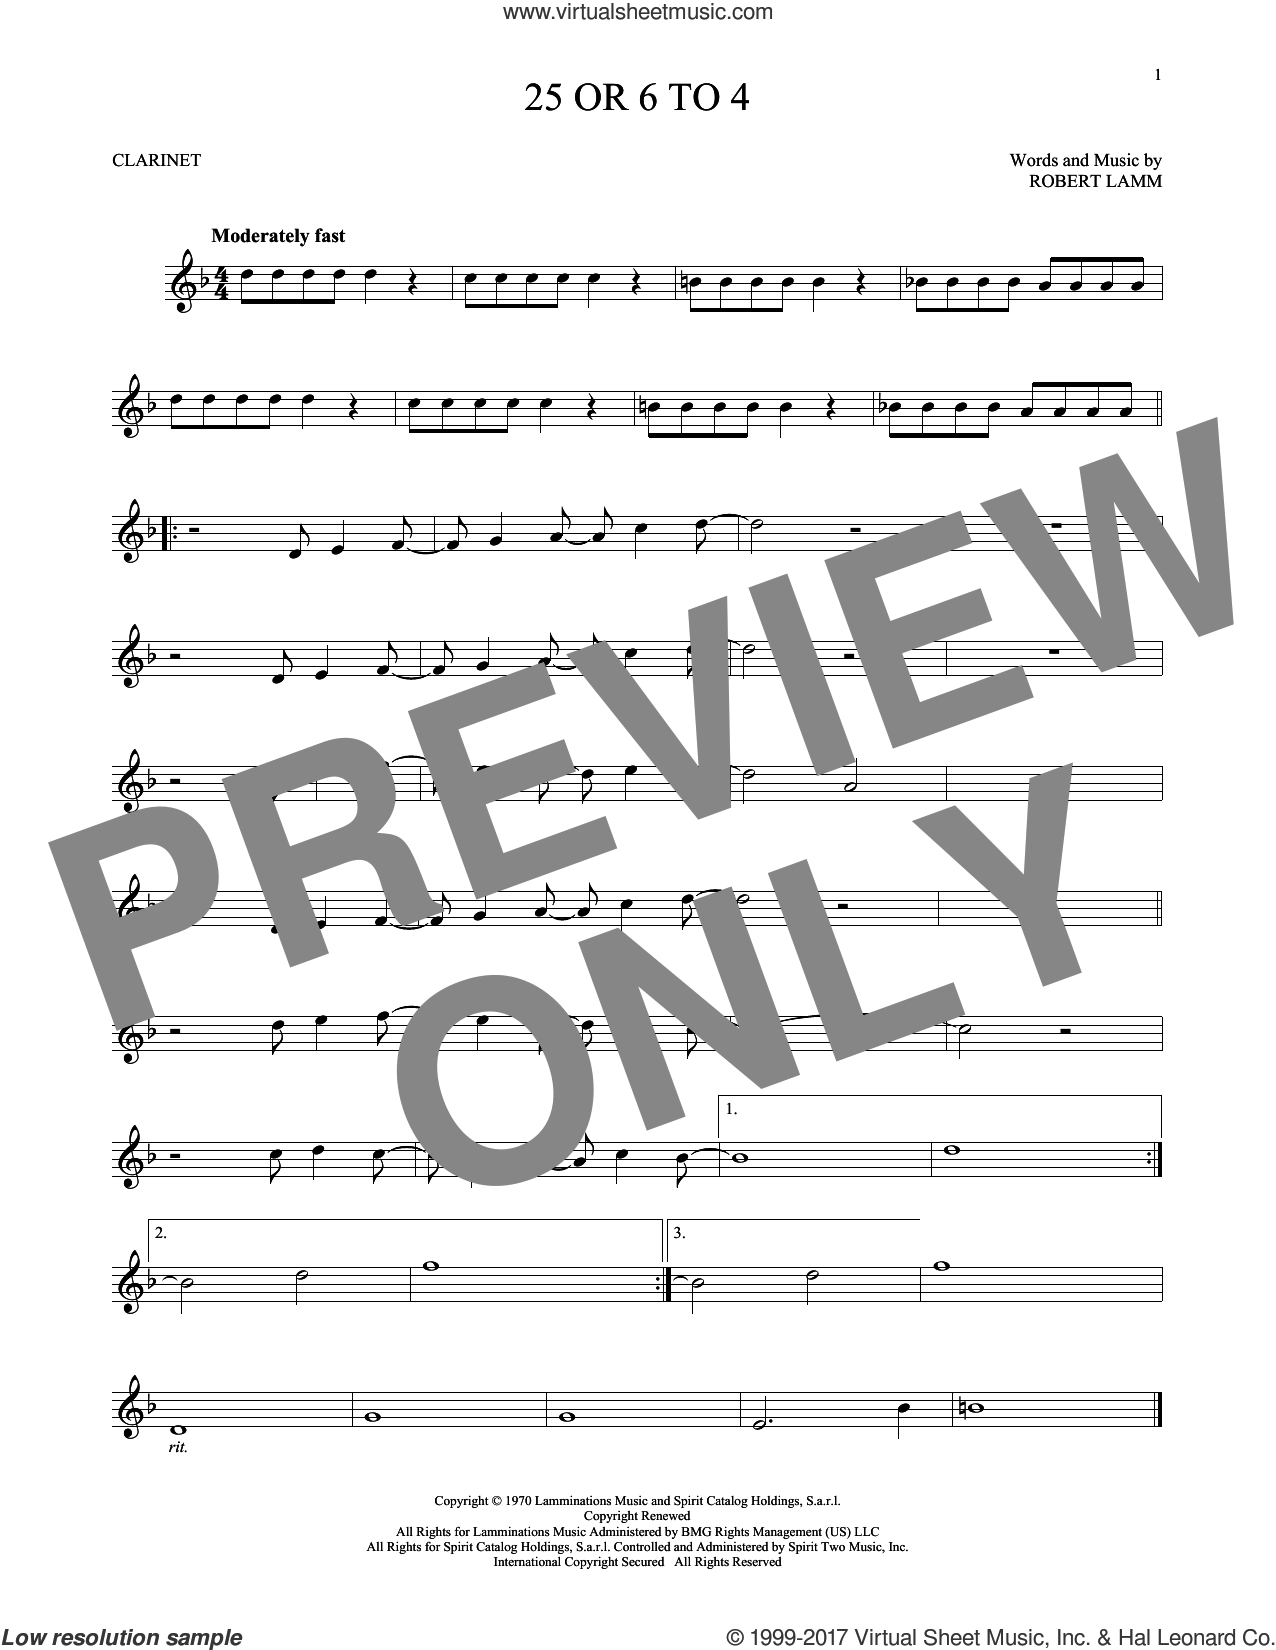 25 Or 6 To 4 sheet music for clarinet solo by Chicago and Robert Lamm, intermediate skill level